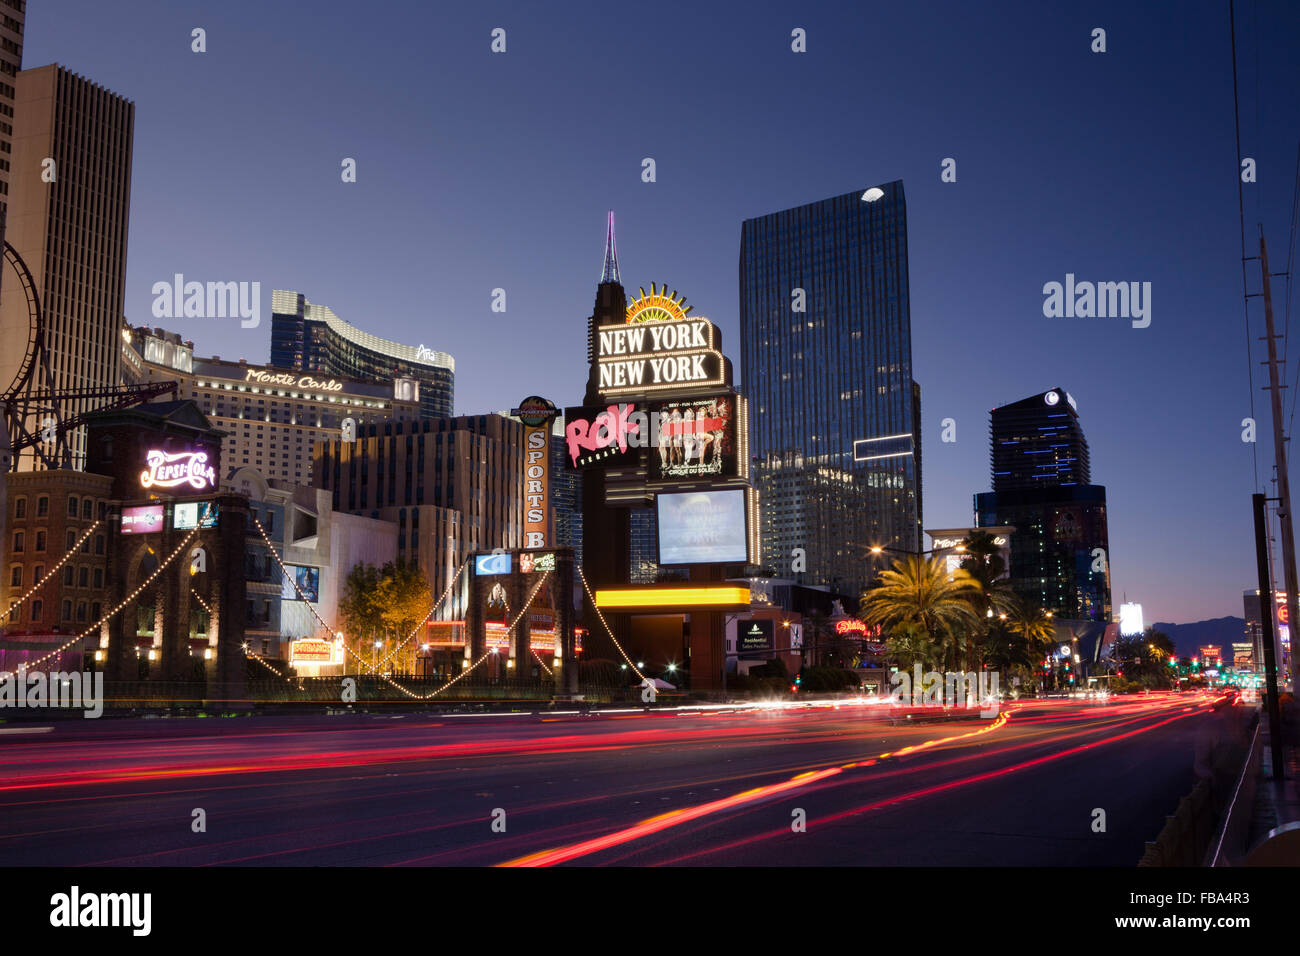 USA, Nevada, Las Vegas, View of city street at nigh - Stock Image